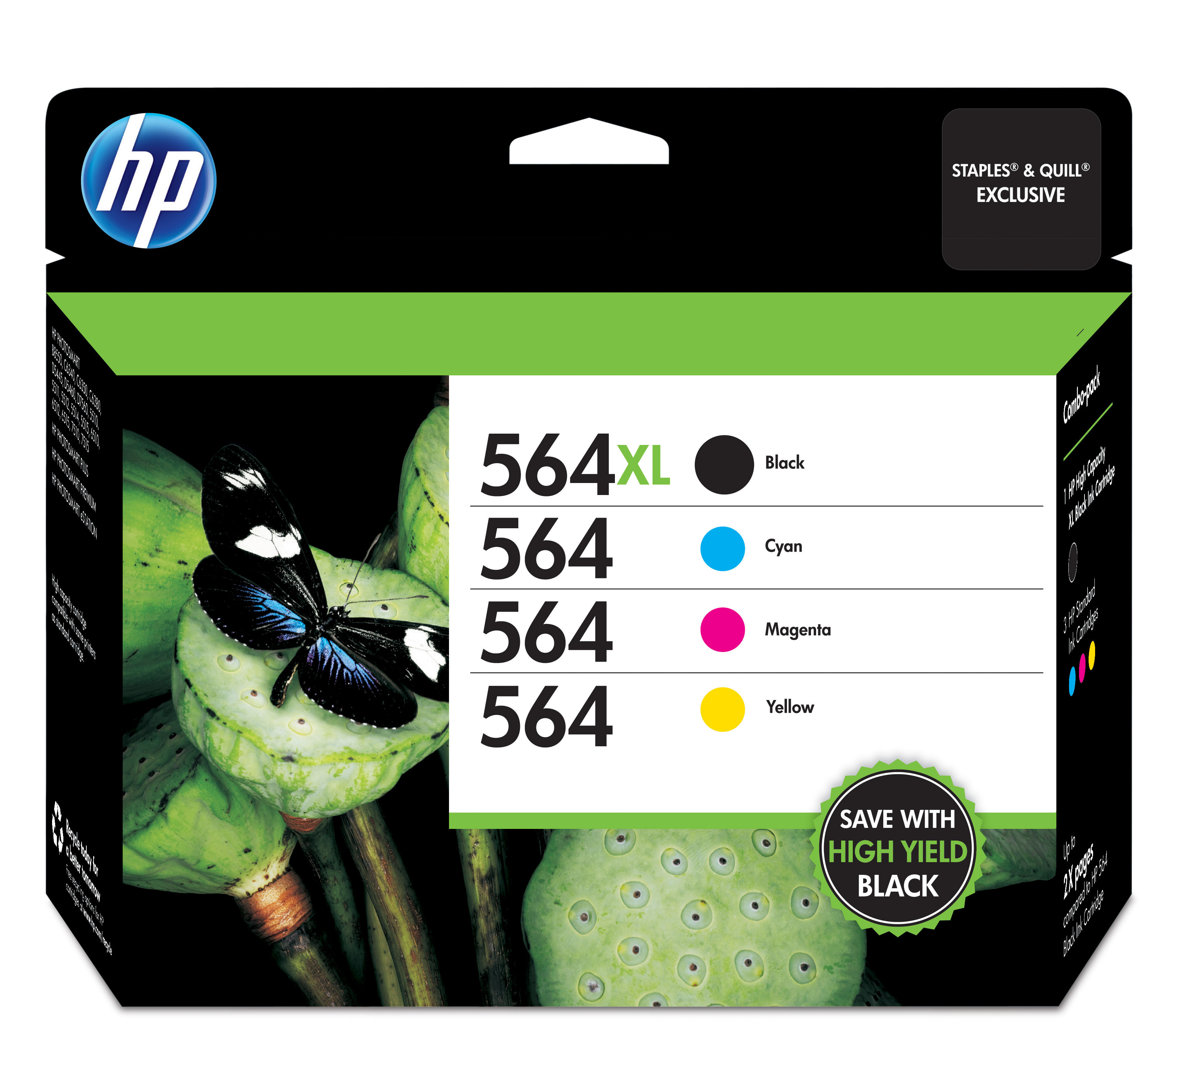 HP 564XL High Yield Black And HP 564 CyanMagentaYellow Ink Cartridges Pack  Of 4 by Office Depot & OfficeMax